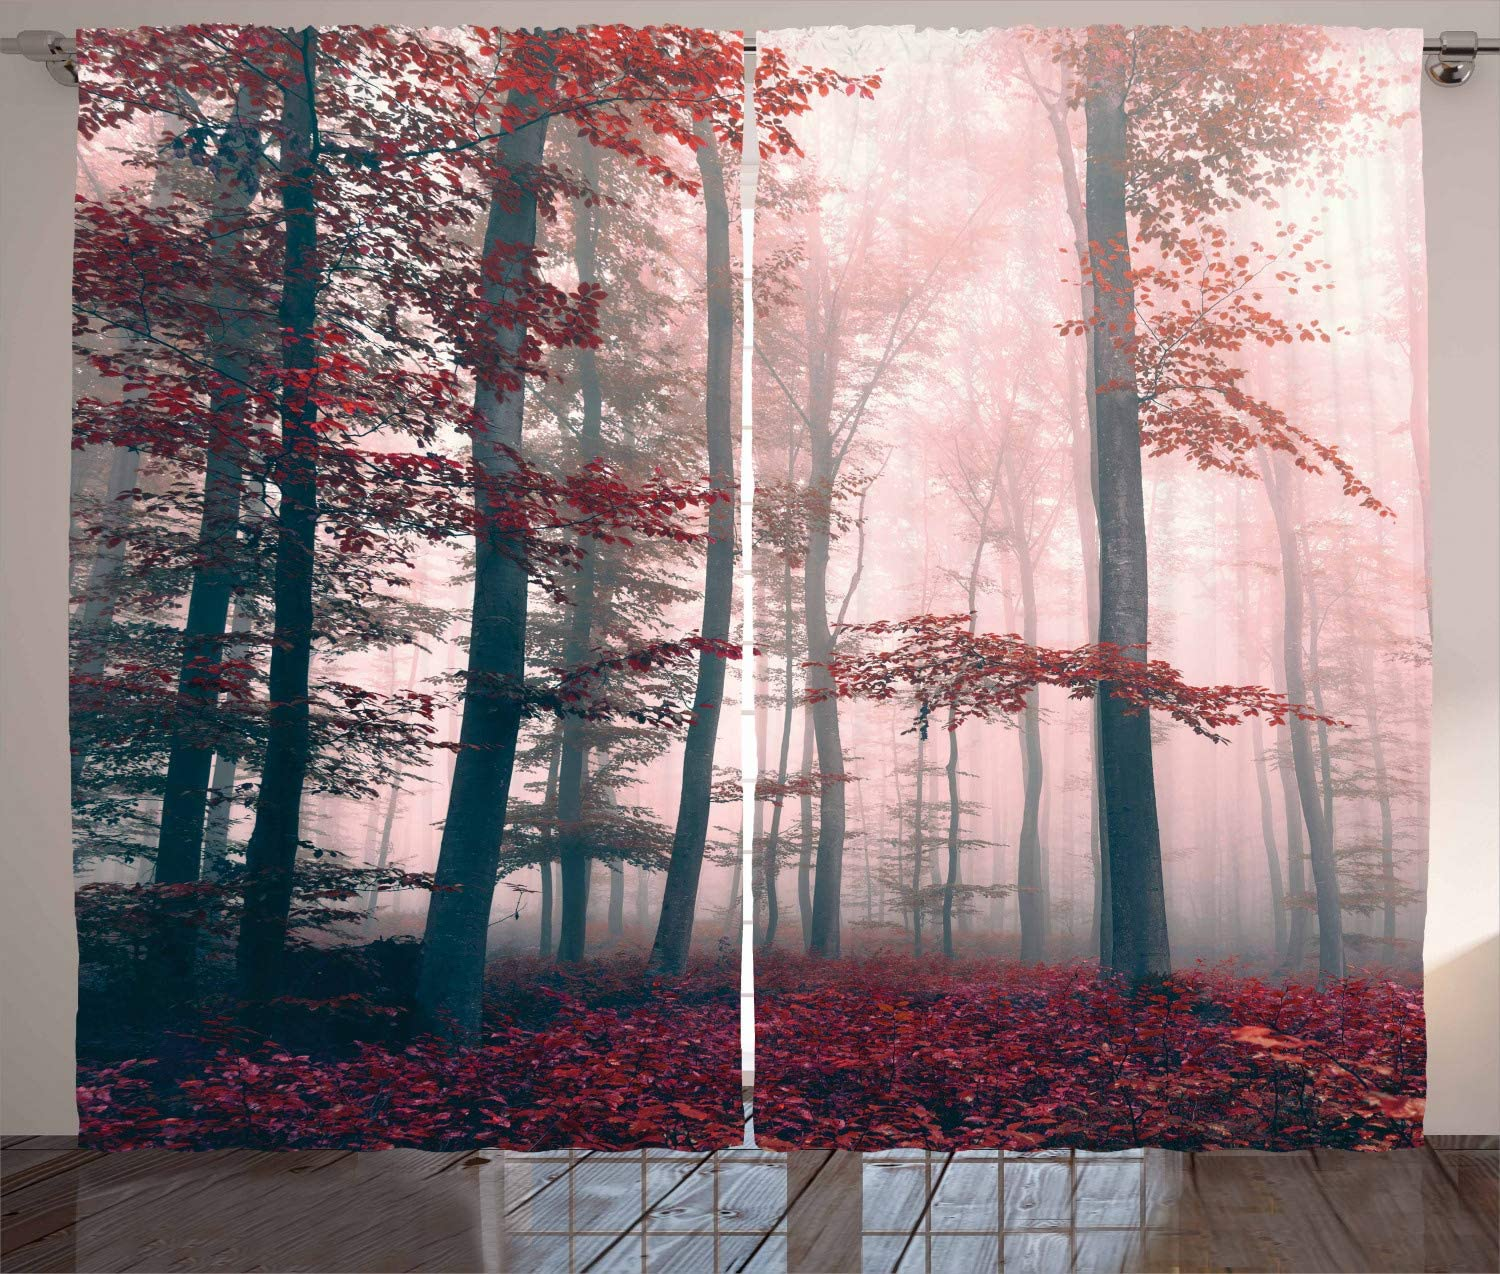 Ambesonne Forest Curtains, Autumn Season Mystic Foggy Fall Nature and Enchanted Woods Wild Trees Print, Living Room Bedroom Window Drapes 2 Panel Set, 108